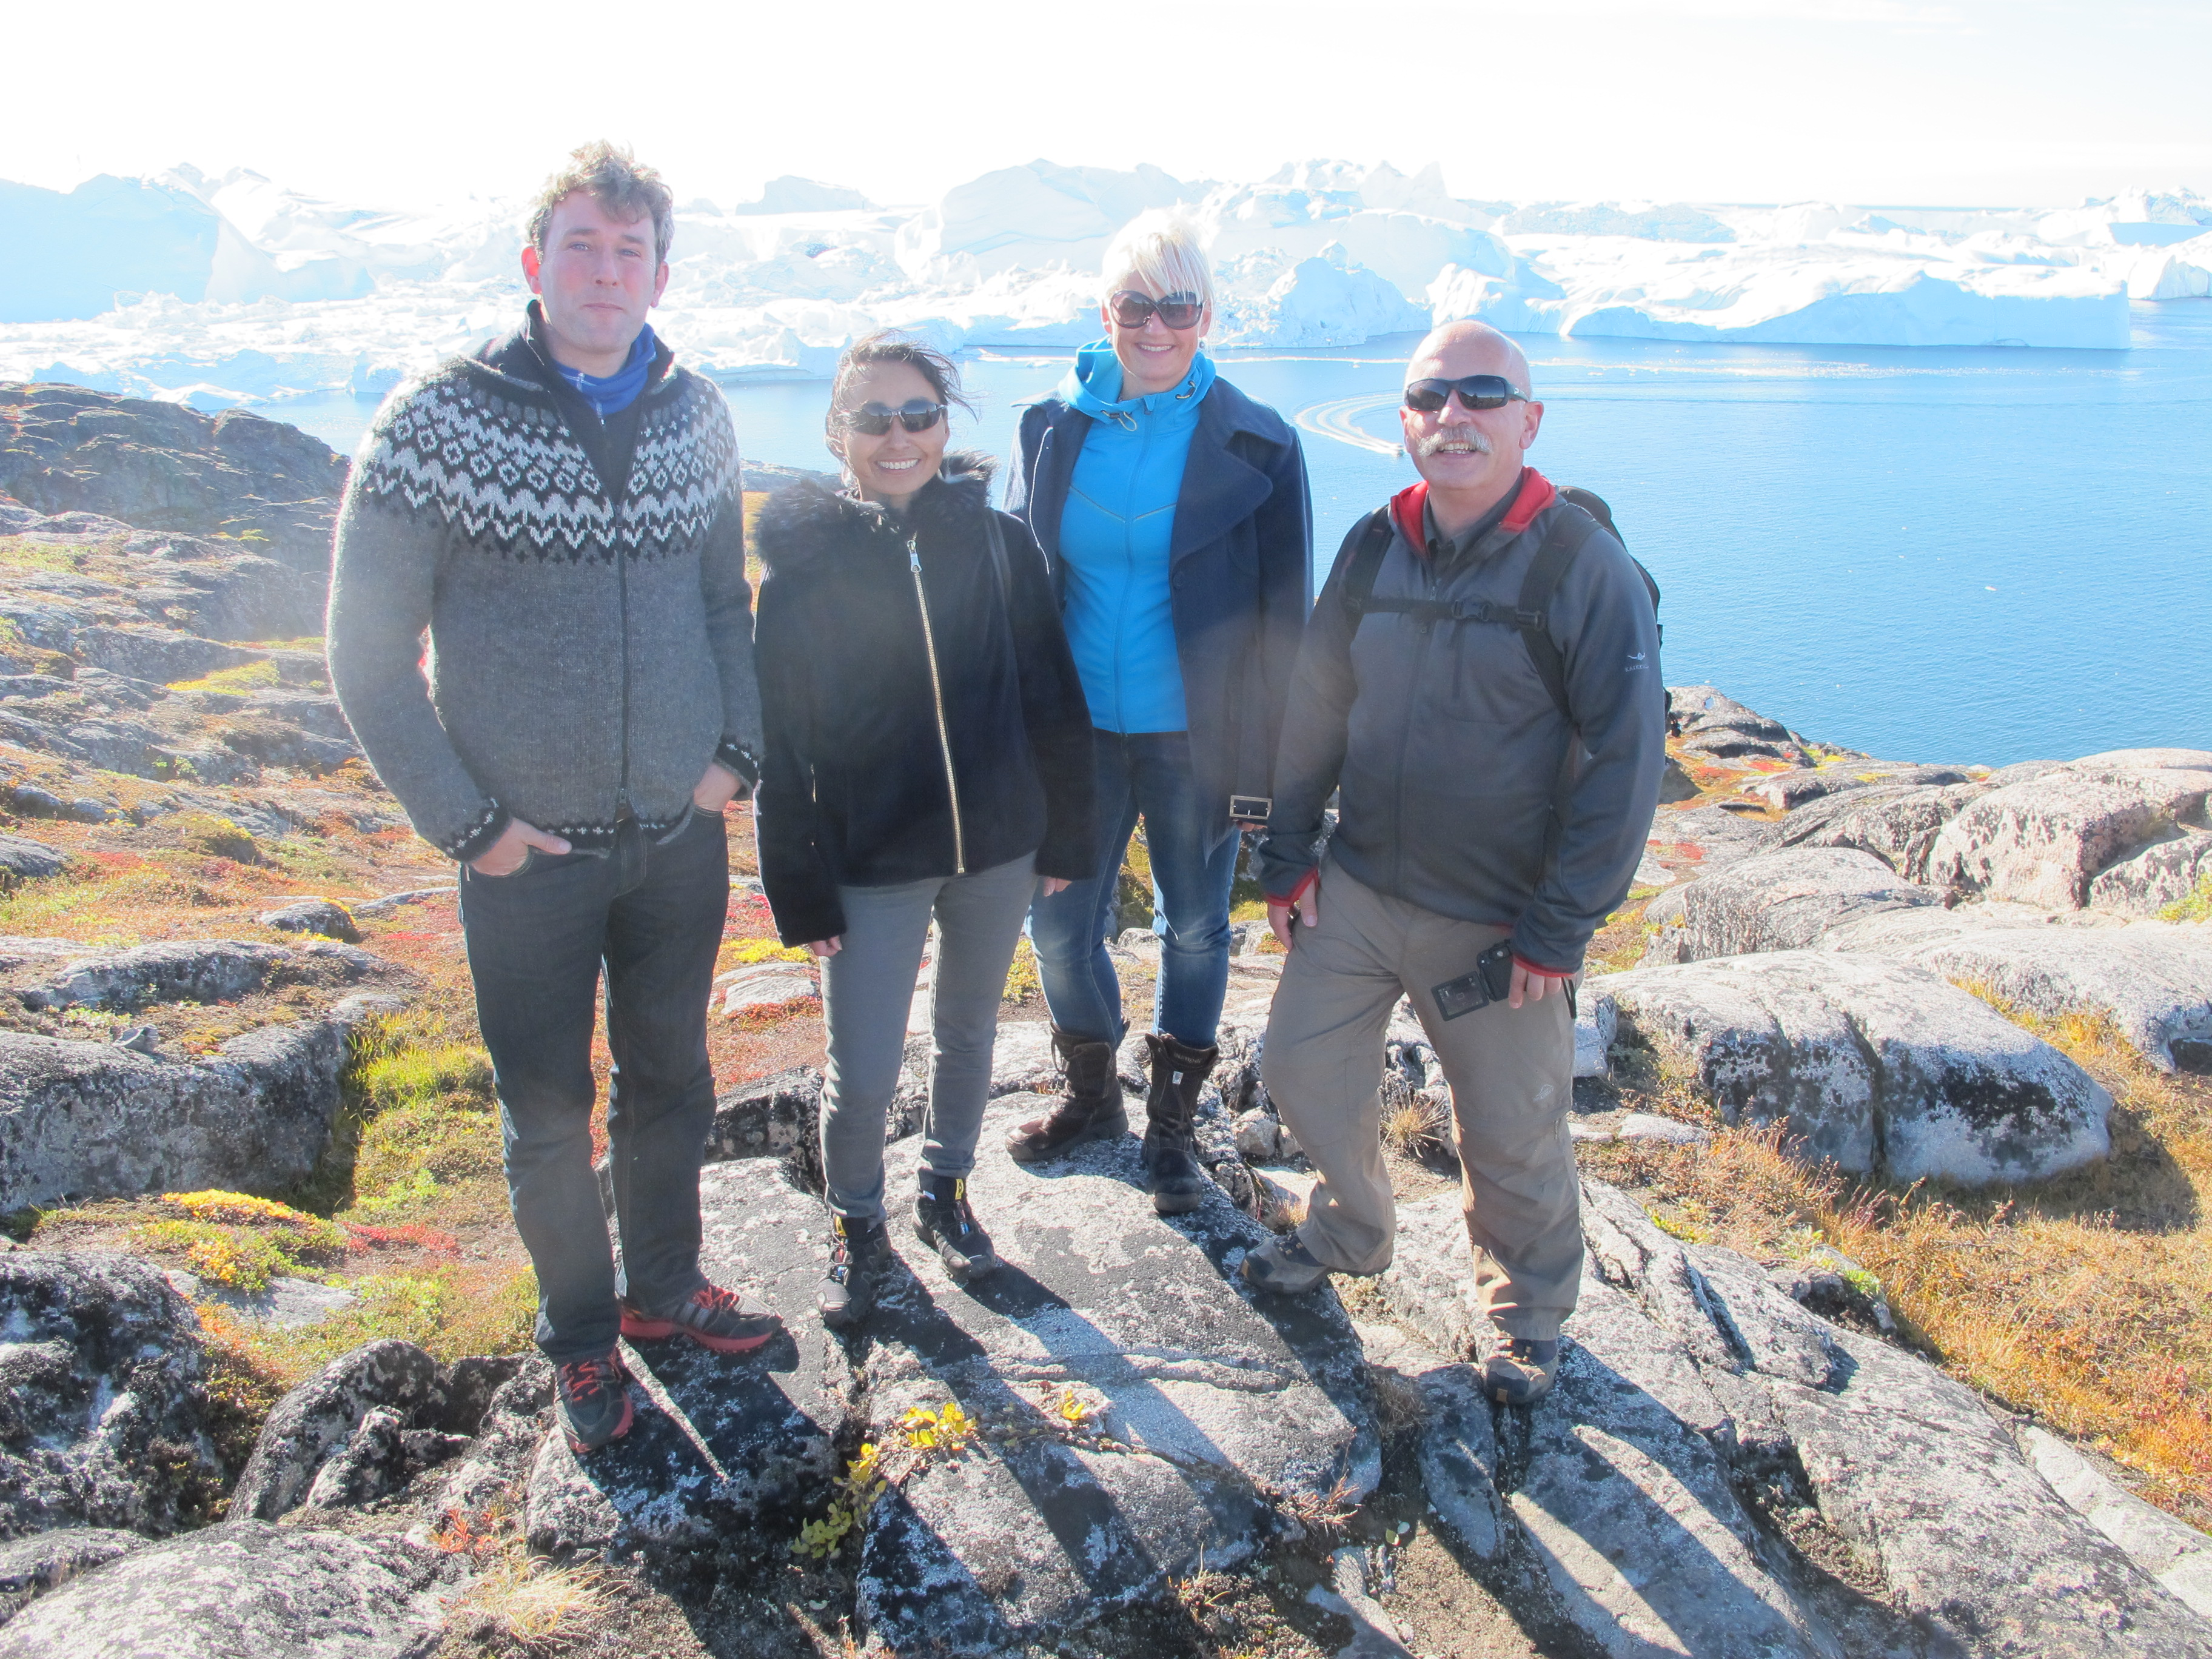 Tom Barry, CAFF, Miiti Lynge, Greenland Minister for Housing, Nature and the Environment, Inge Thaulow, Government of Greenland and Tobias Salathe, Ramsar Secretariat attend the NorBalWet meeting